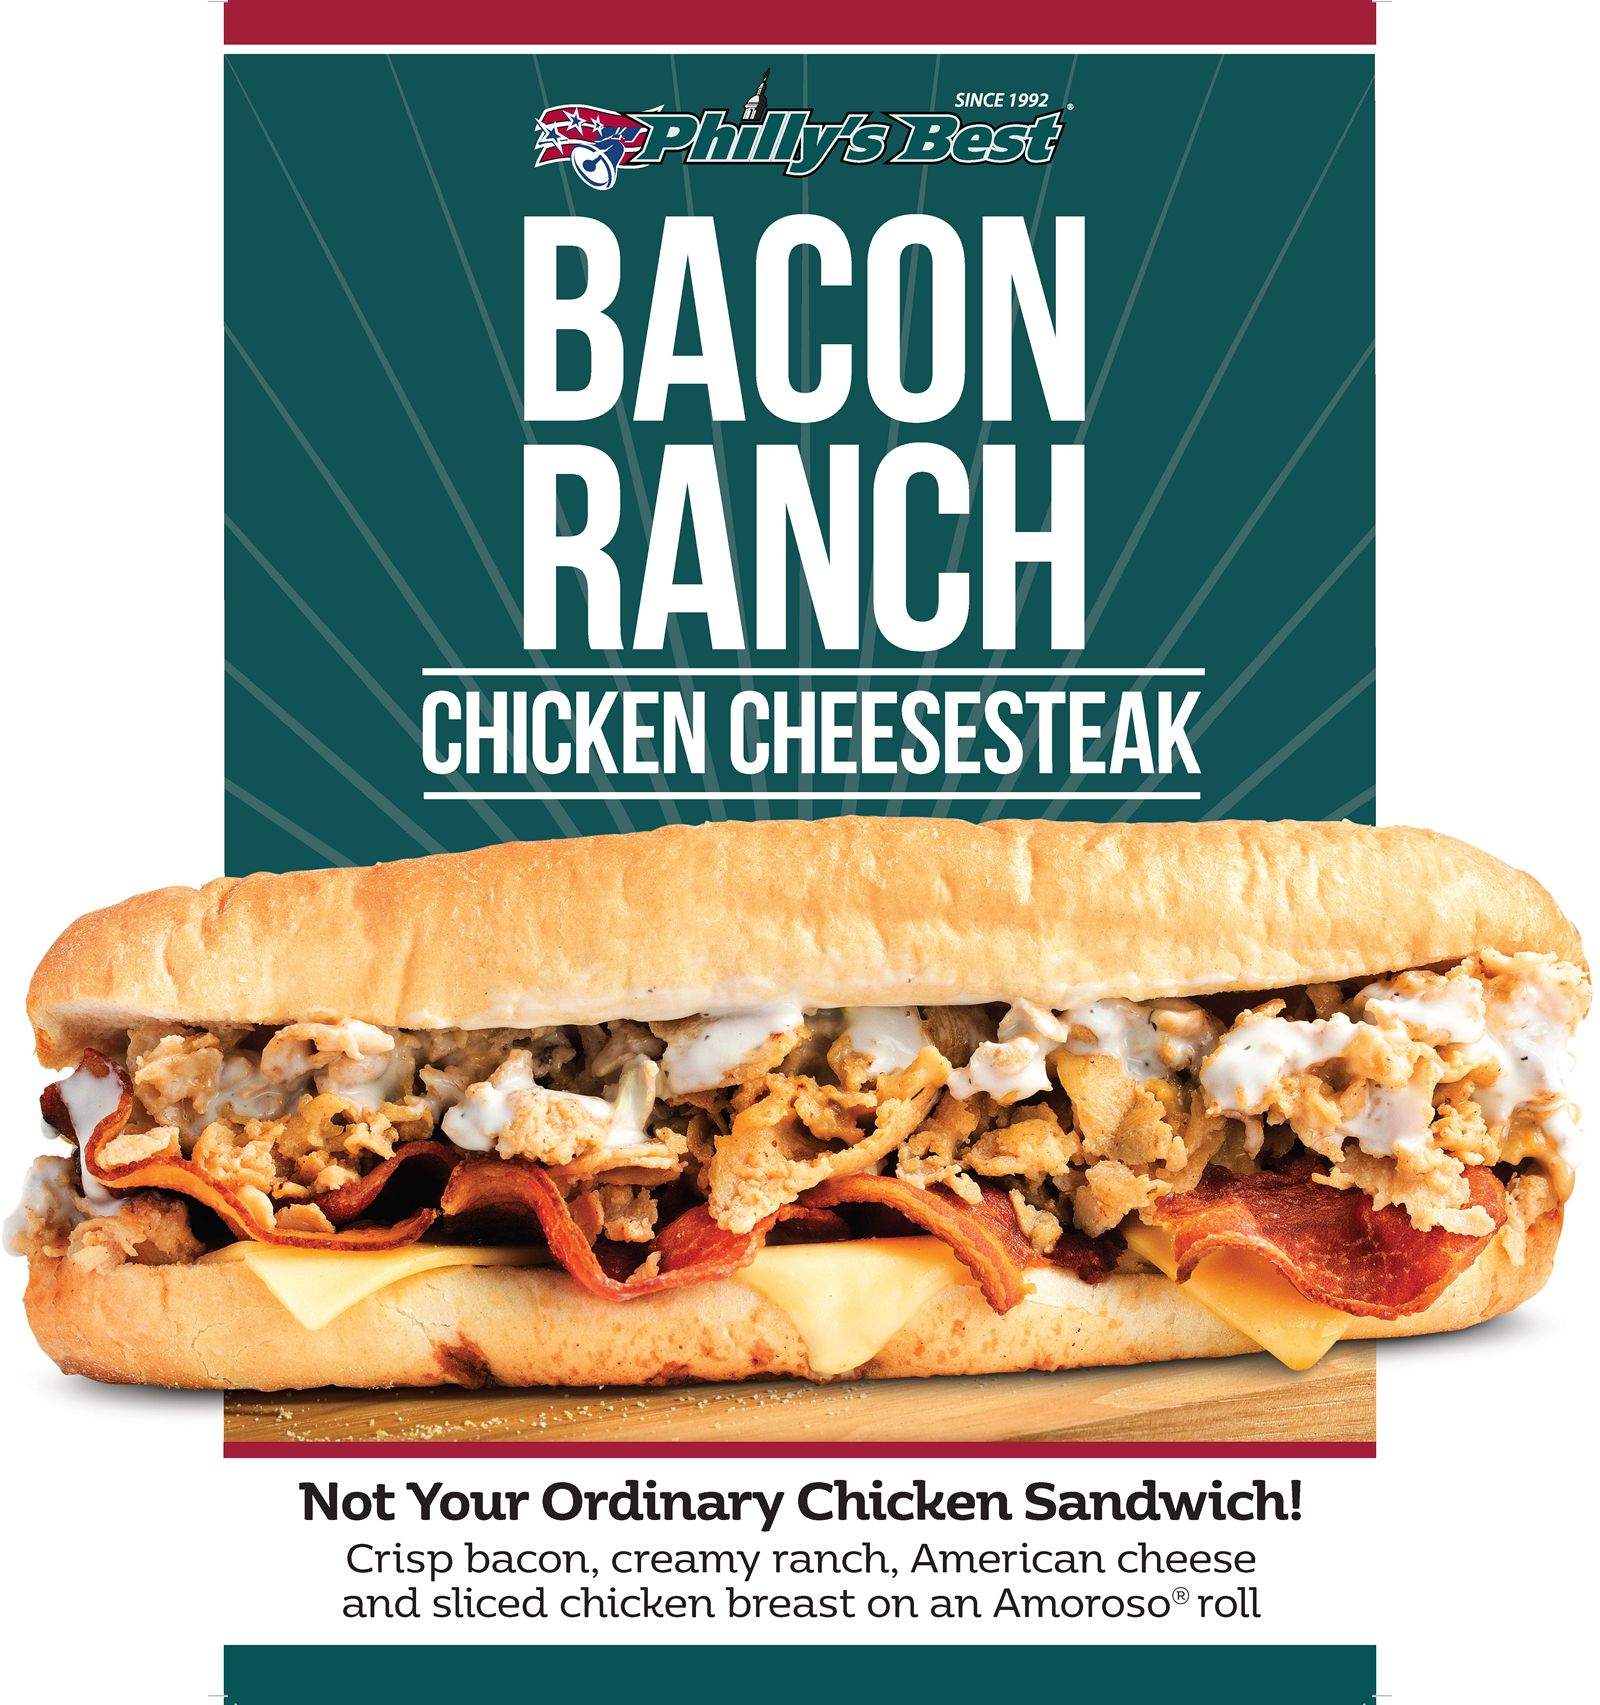 Philly's Best Launches new Bacon Ranch Chicken Cheesesteak